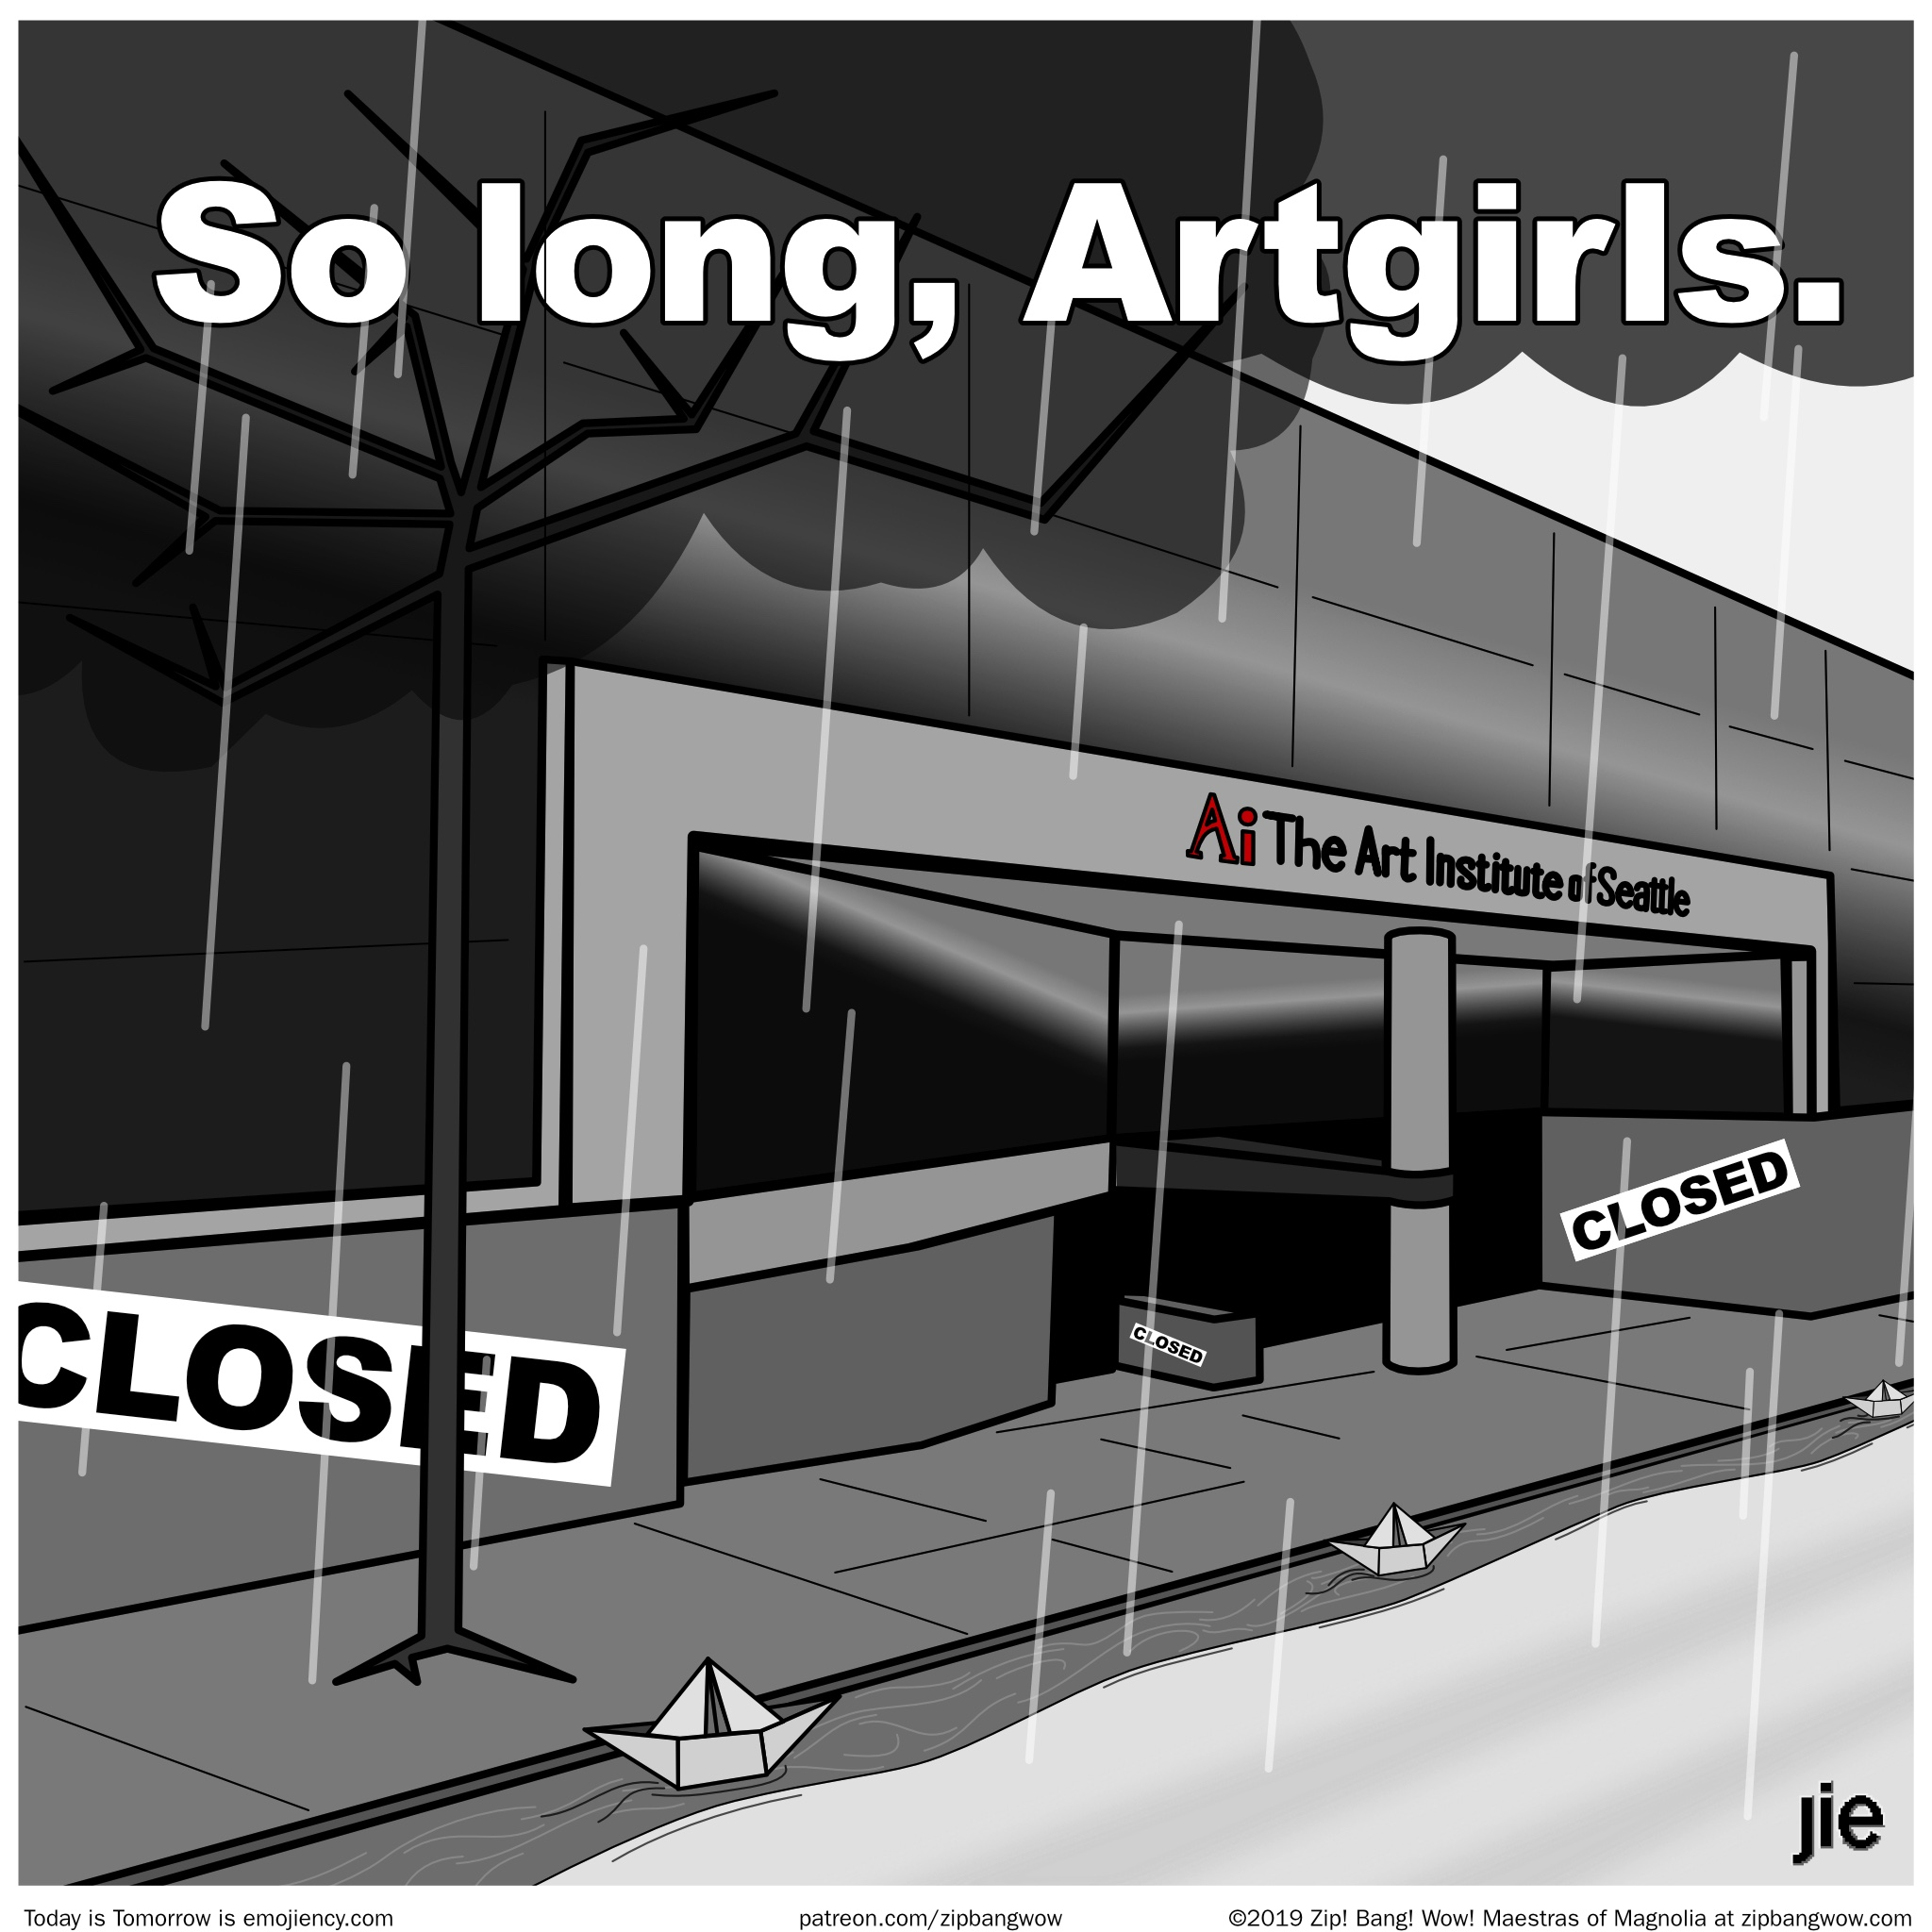 So long, Artgirls